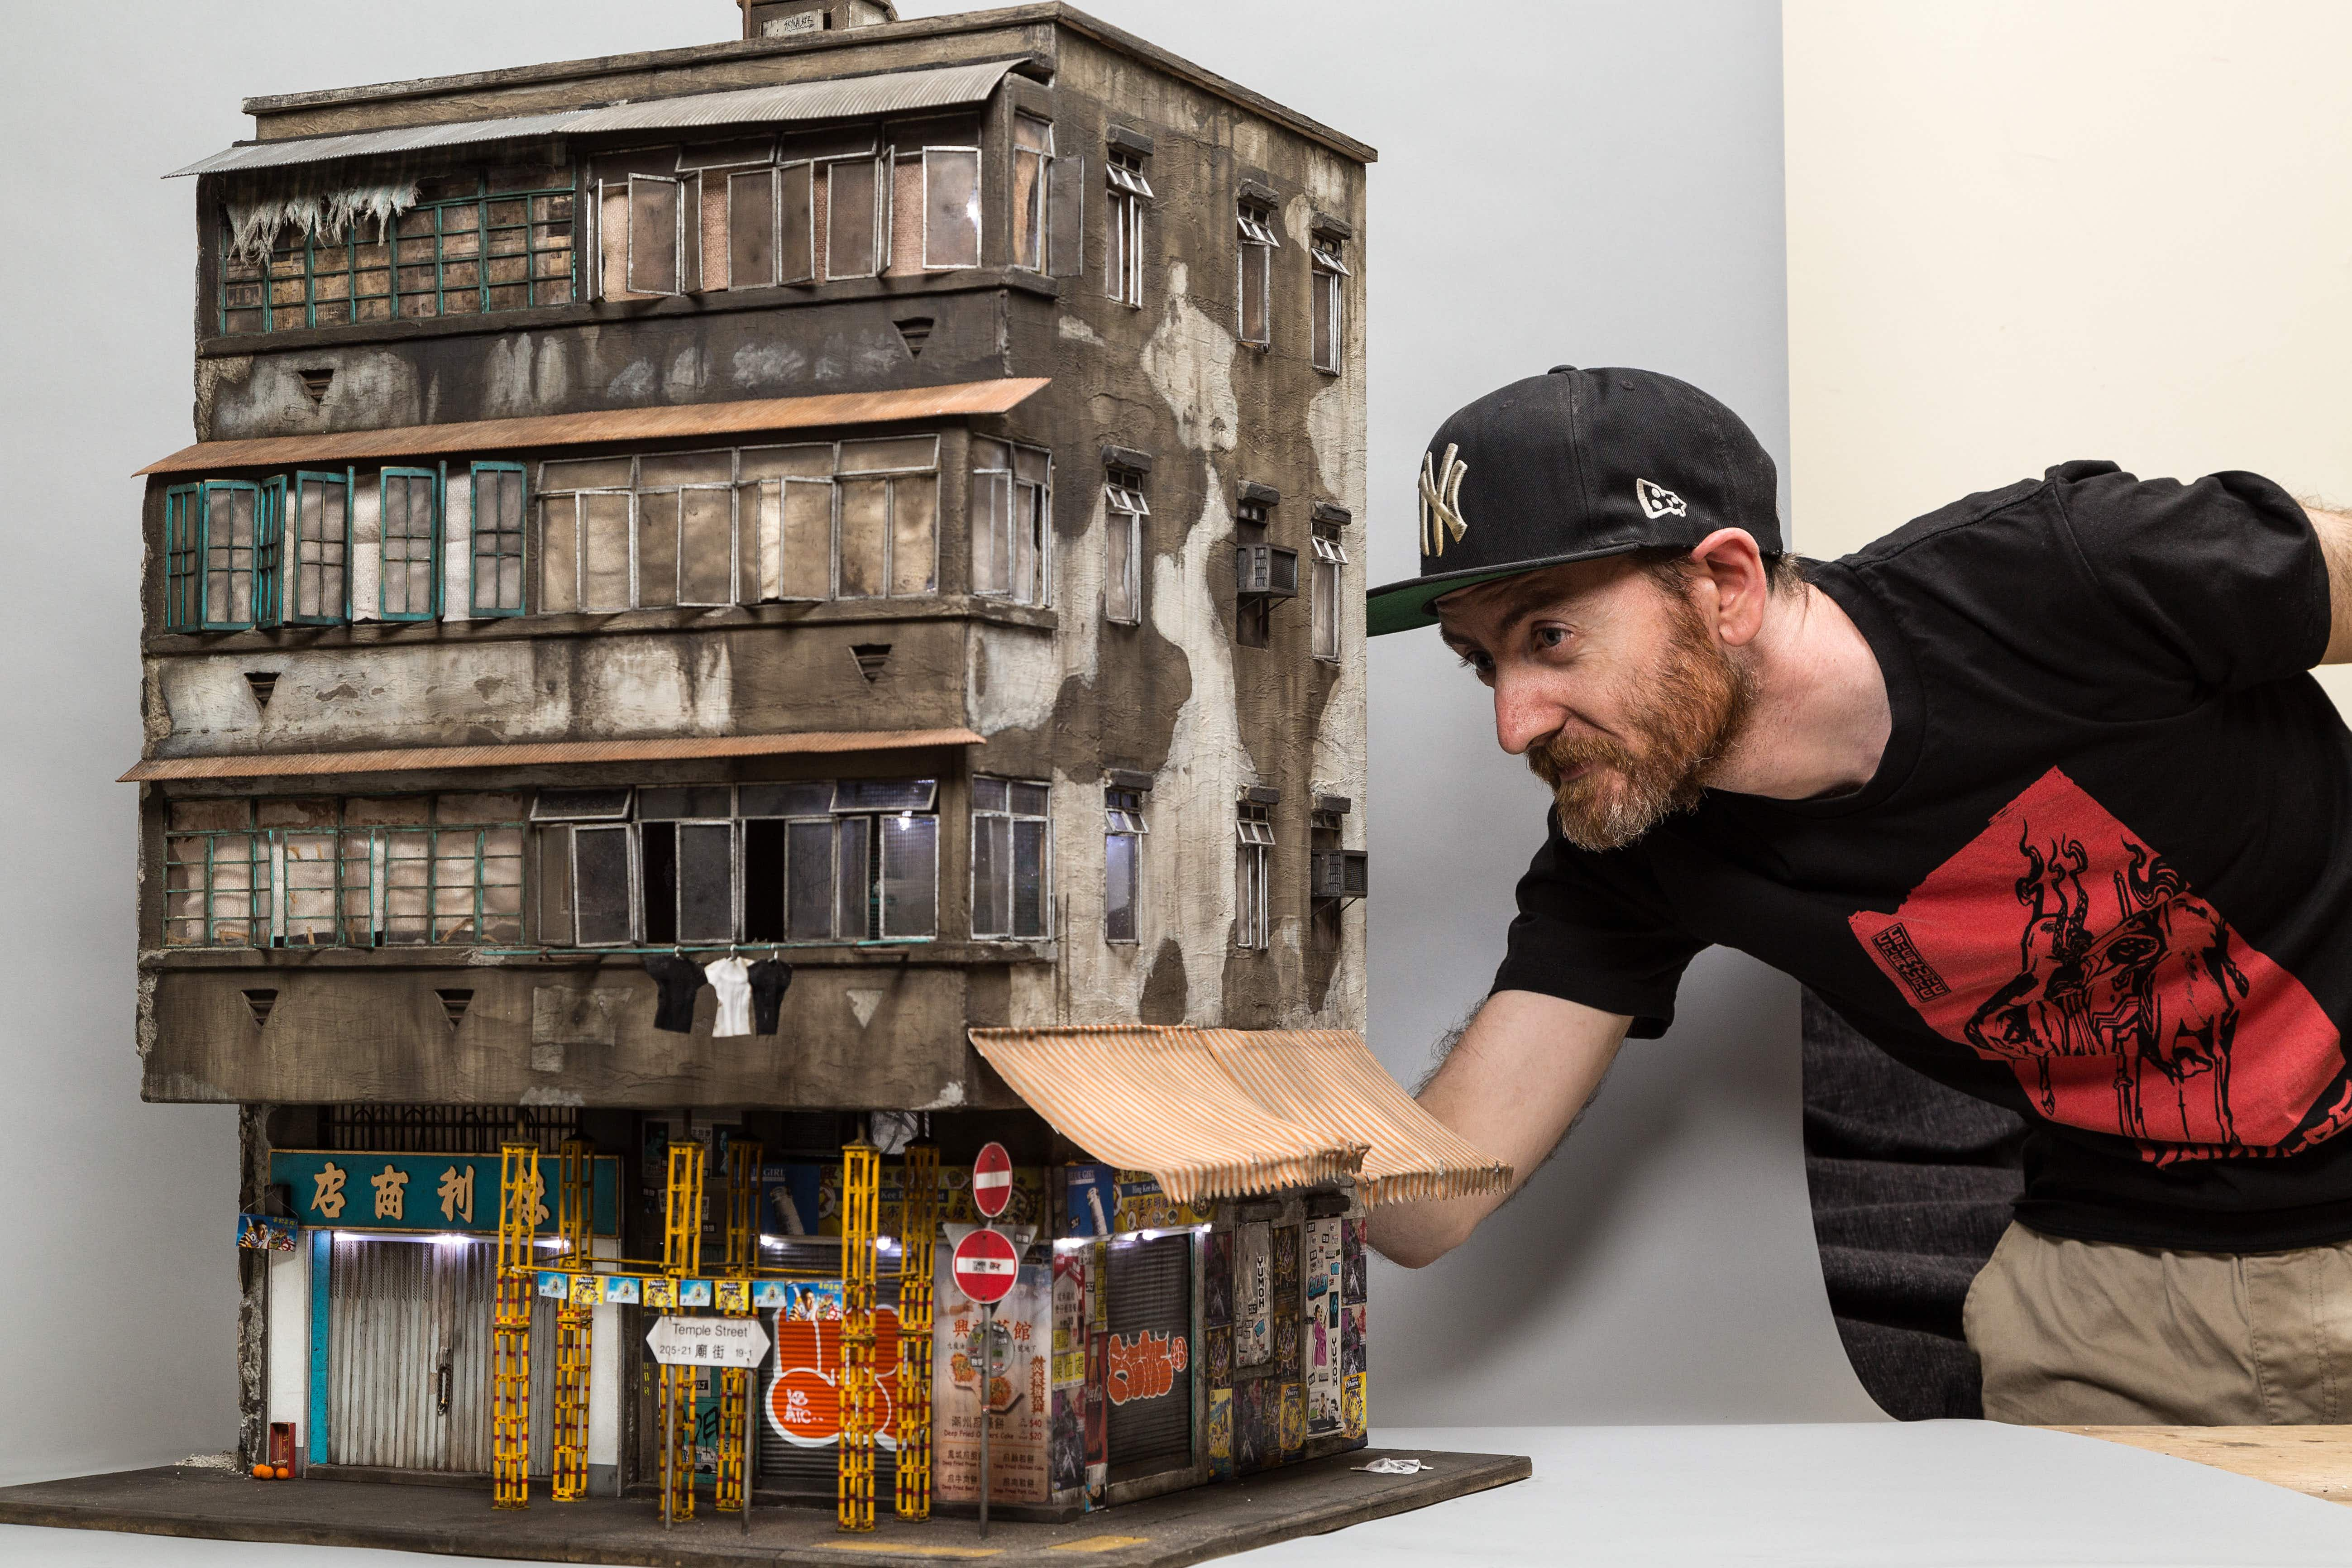 See the world's grittiest buildings created in miniature